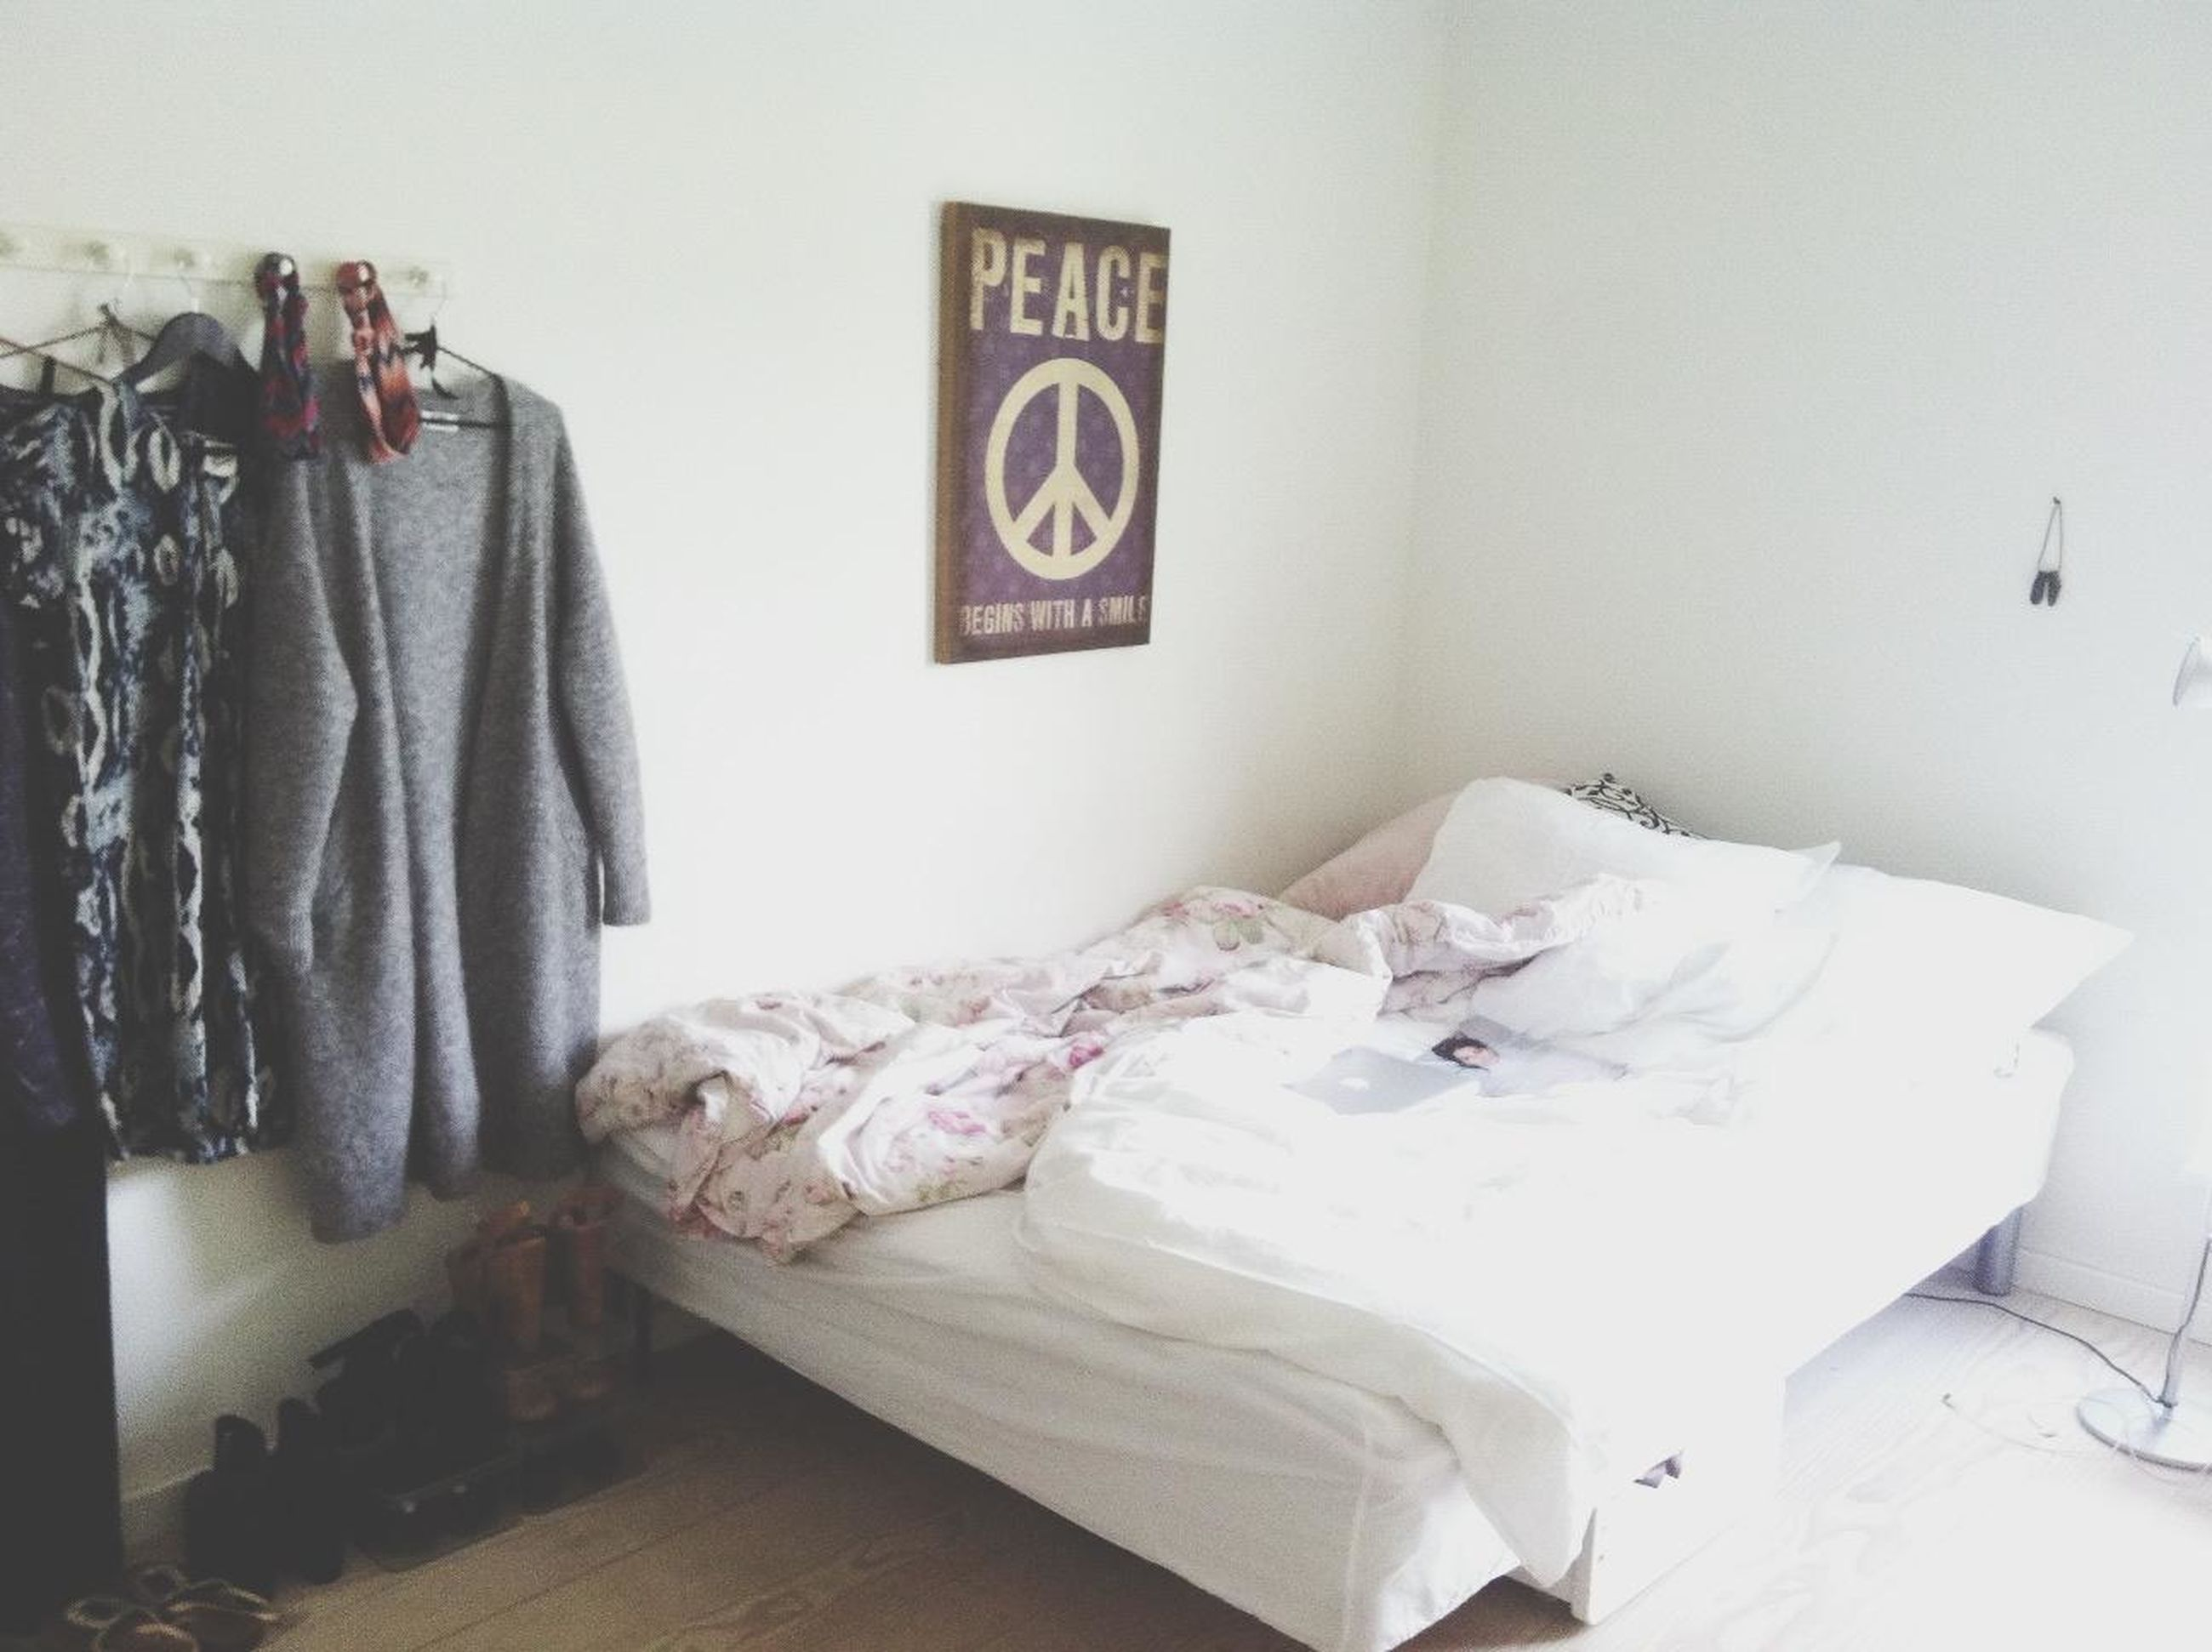 indoors, text, western script, communication, bed, paper, pillow, home interior, bedroom, white color, clothing, wall - building feature, sheet, non-western script, white, fabric, no people, book, still life, store